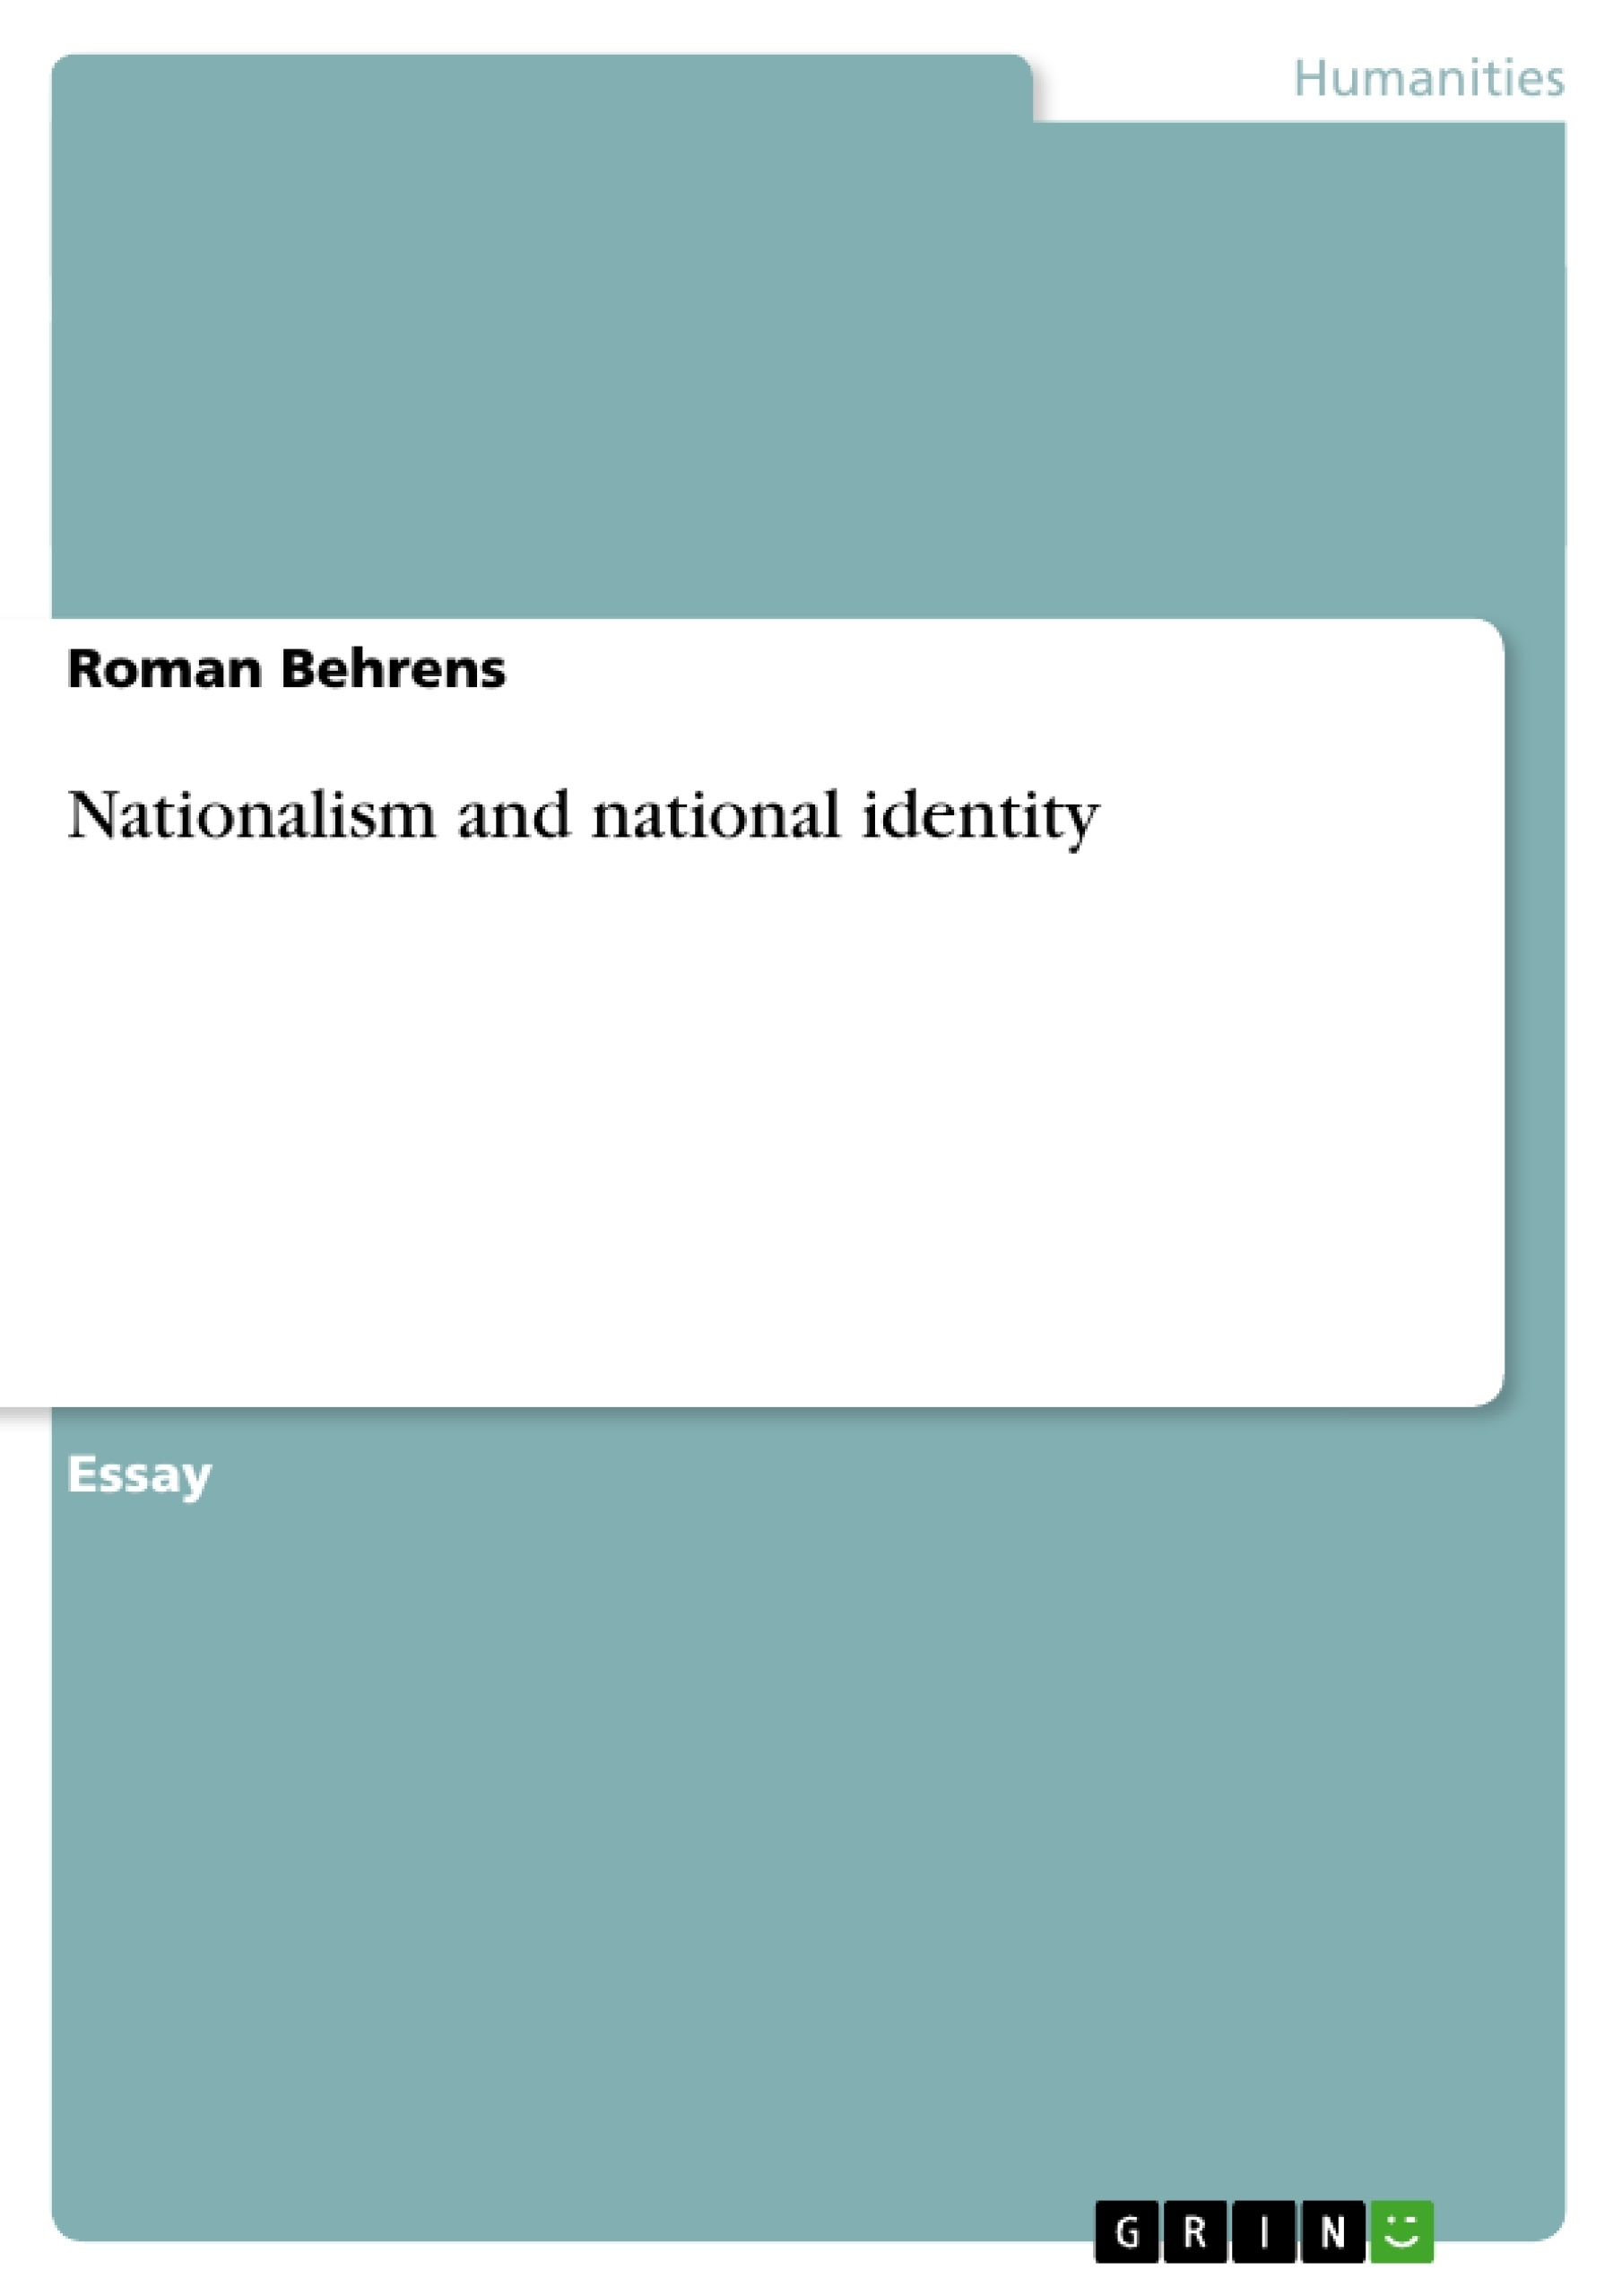 014 Nationalism Essay 129796 0 Impressive Topics African Pdf Full